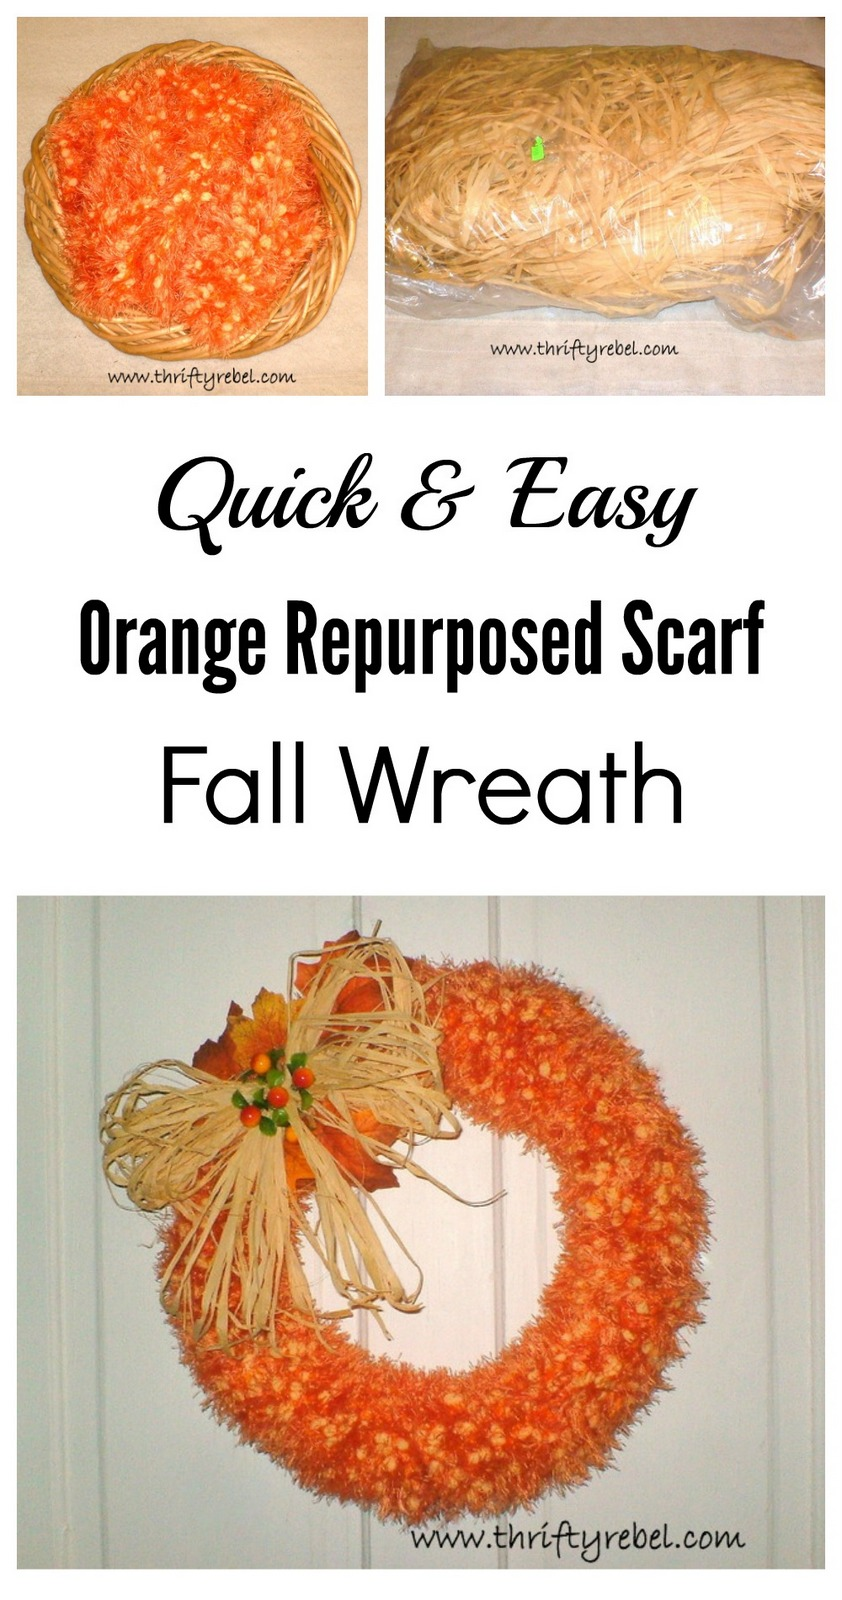 Repurposed scarf fall wreath